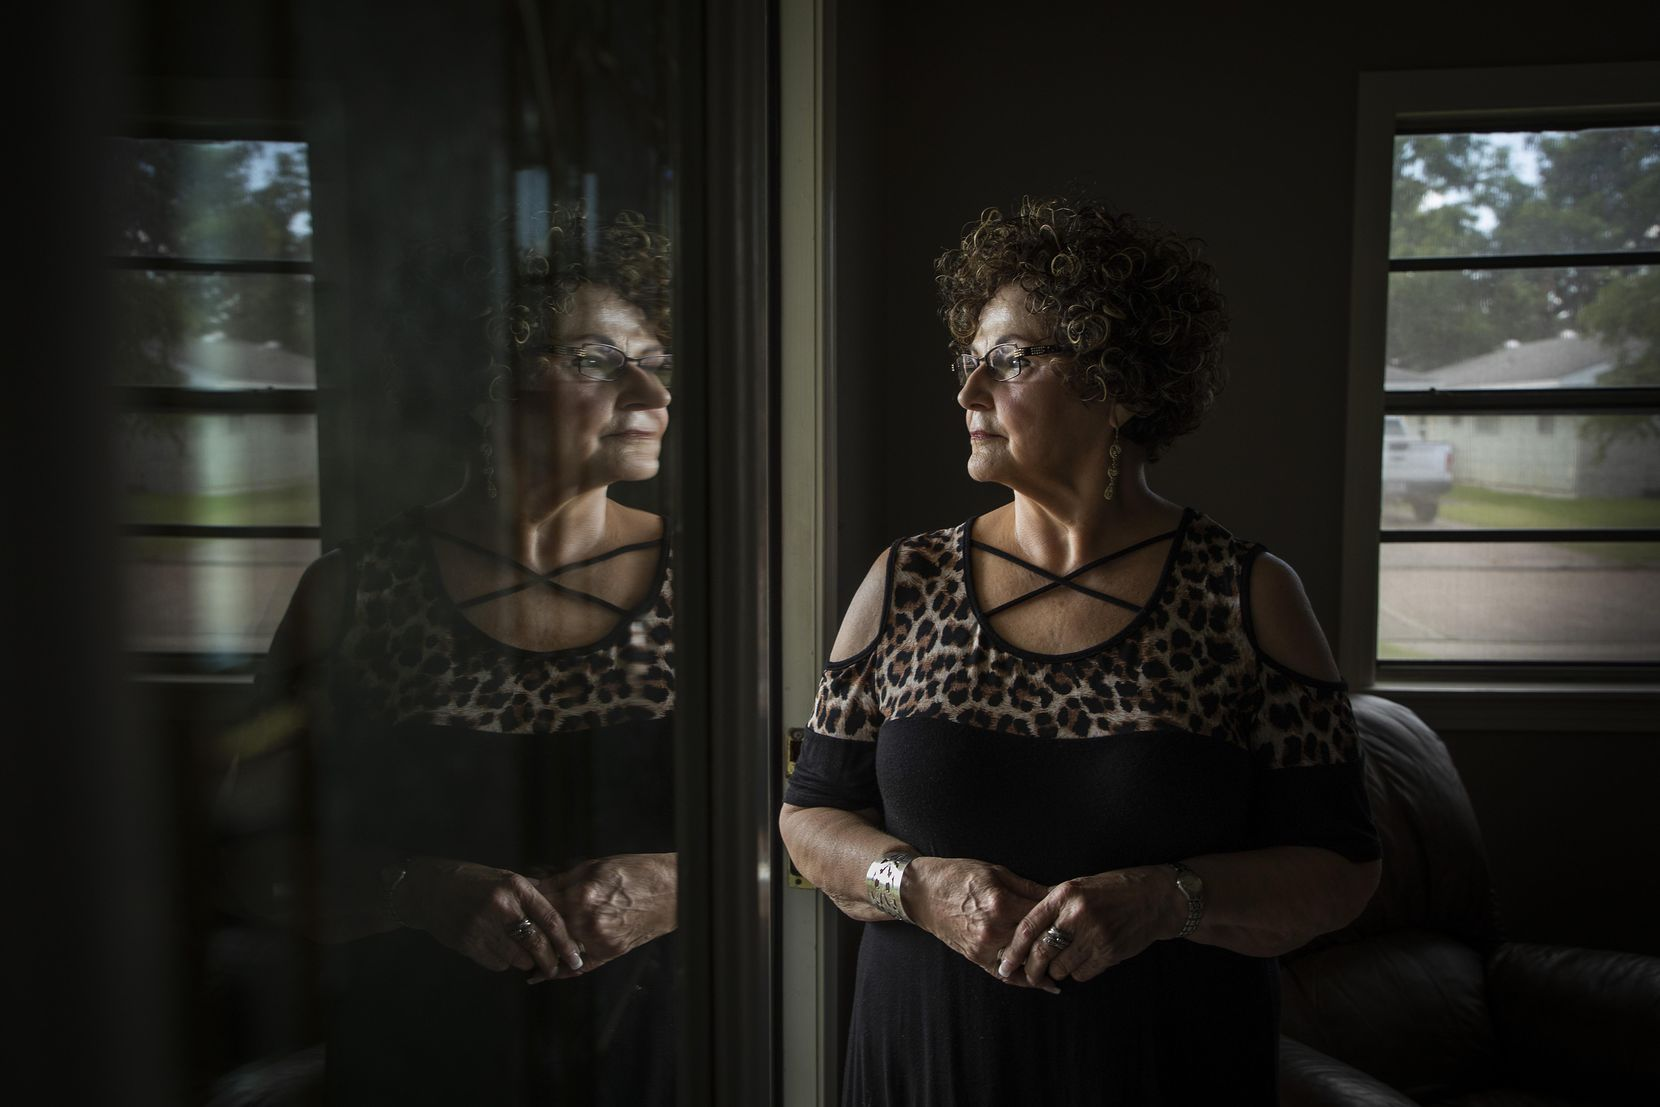 Peggy Bailey photographed at her home on Monday, Aug. 20, 2018, in Port Arthur, Texas.